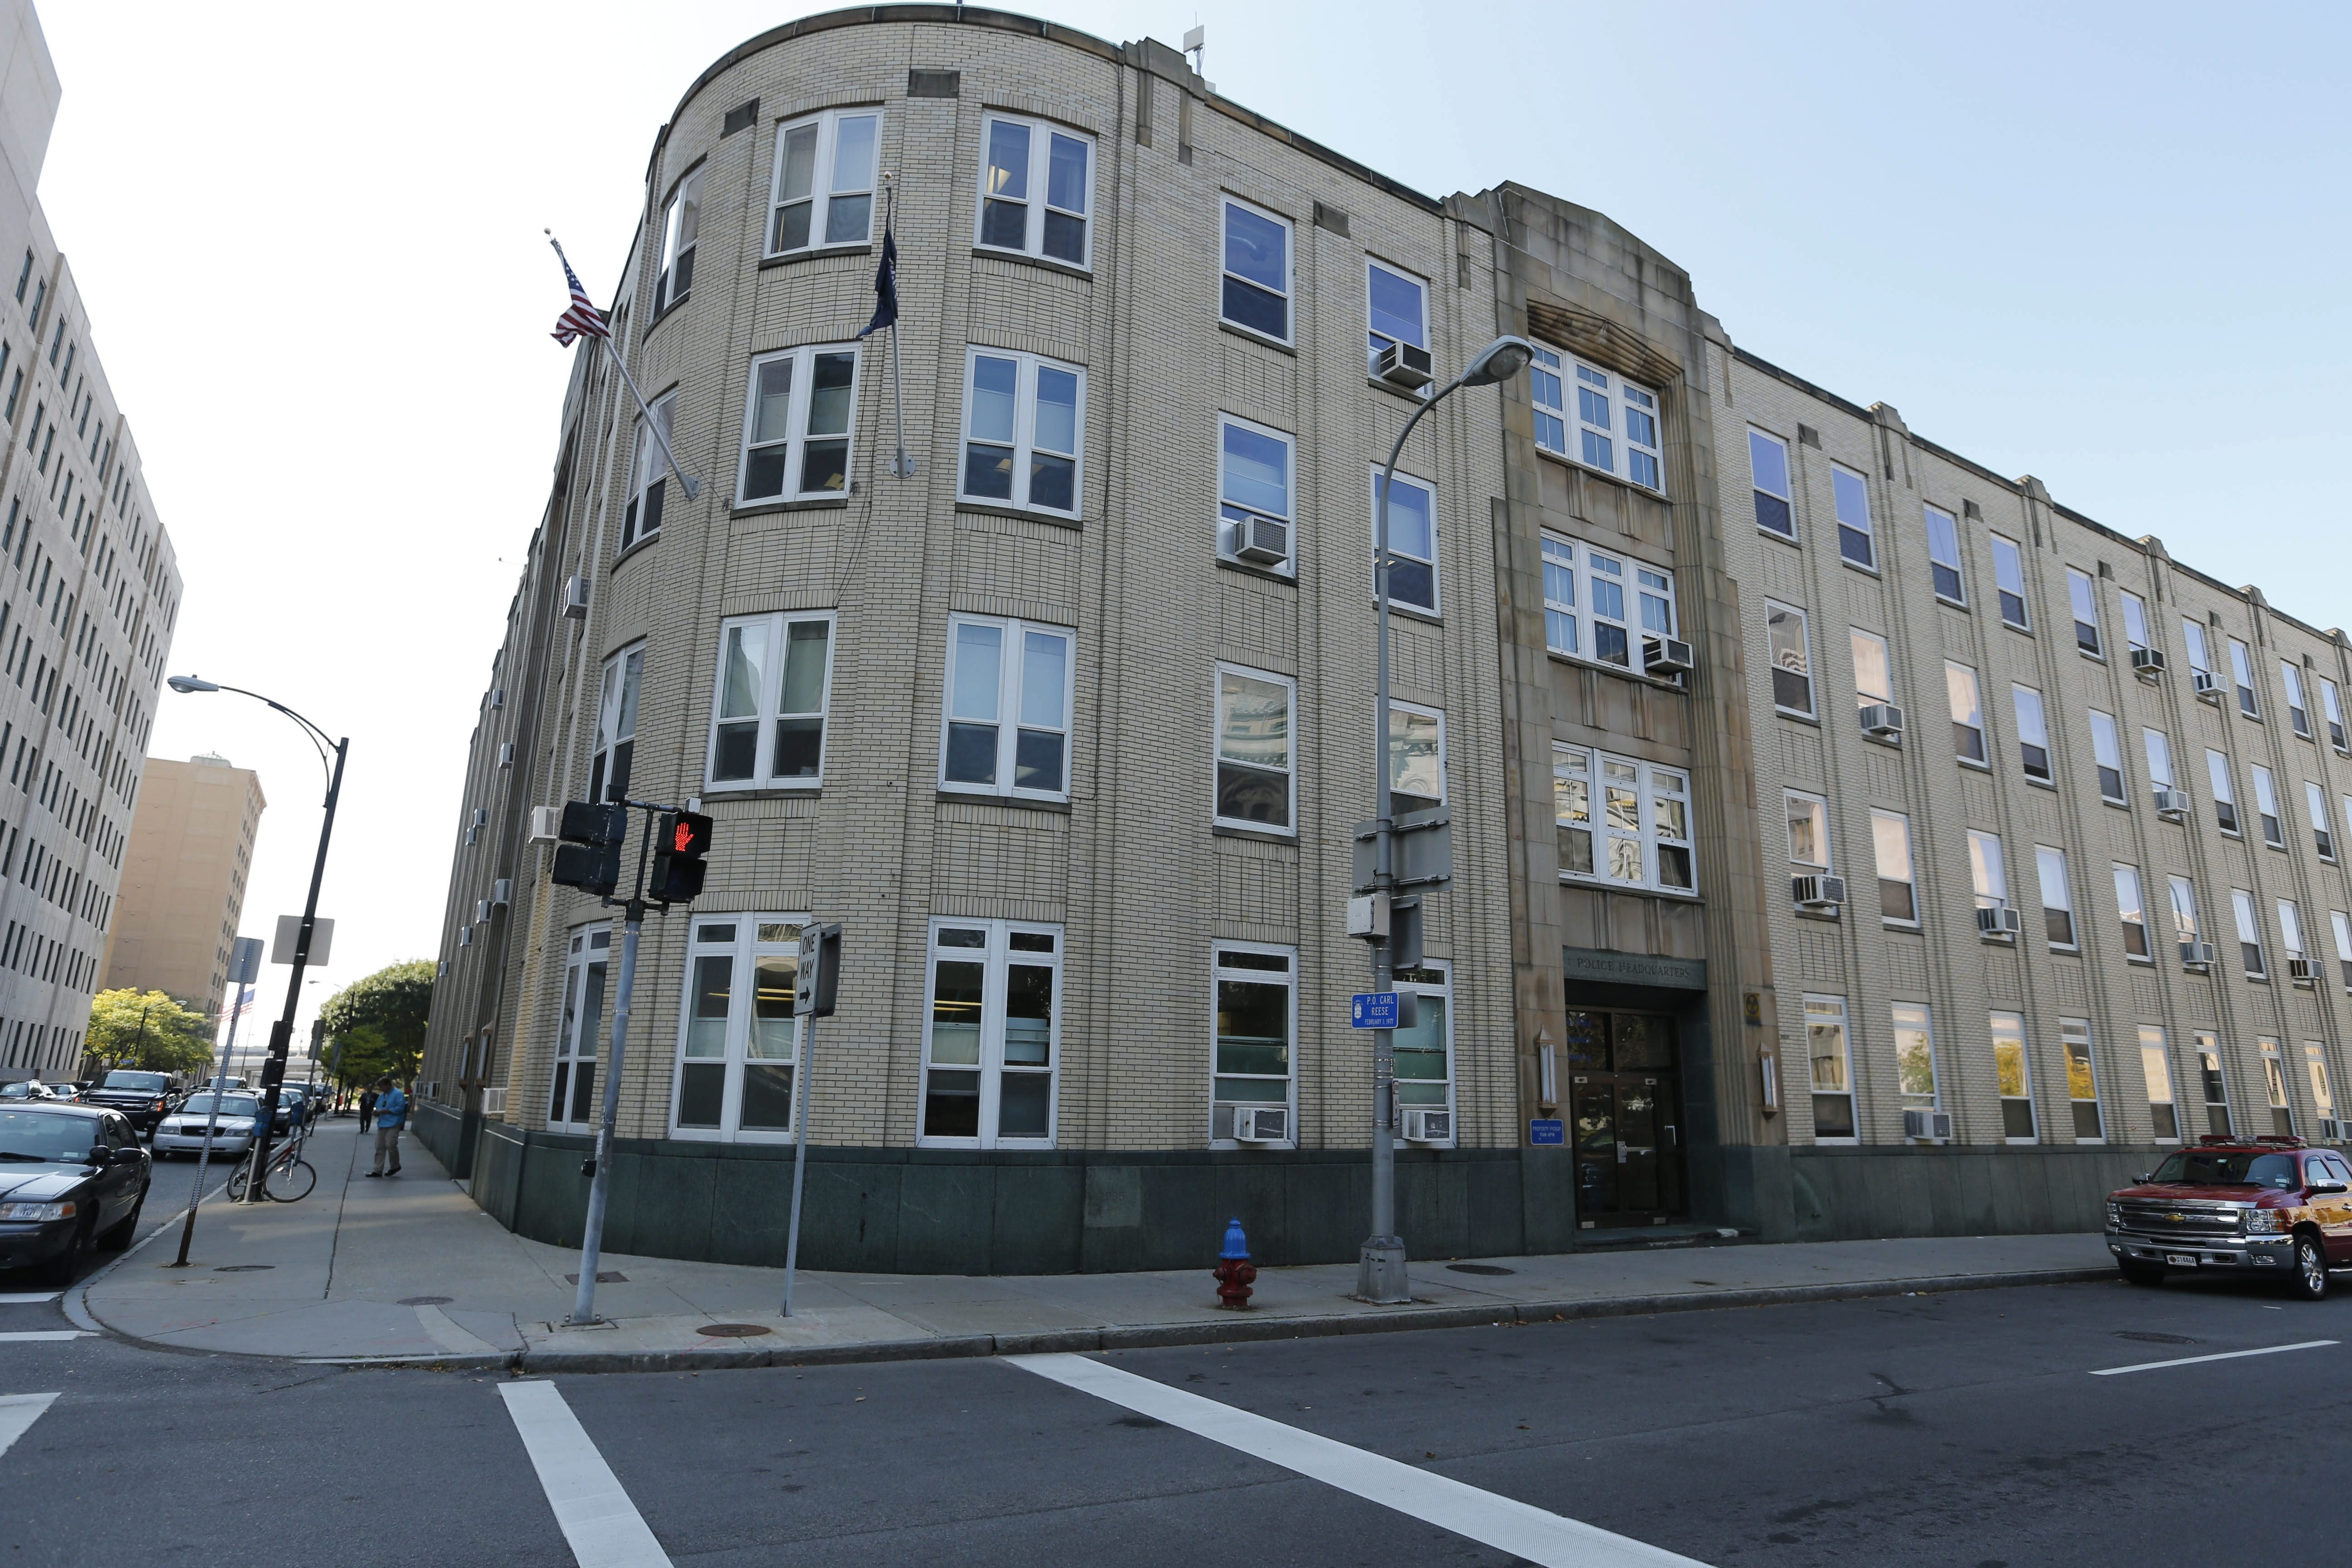 Buffalo Police Headquarters on the corner of Franklin and Church streets is viewed as potentially valuable real estate.